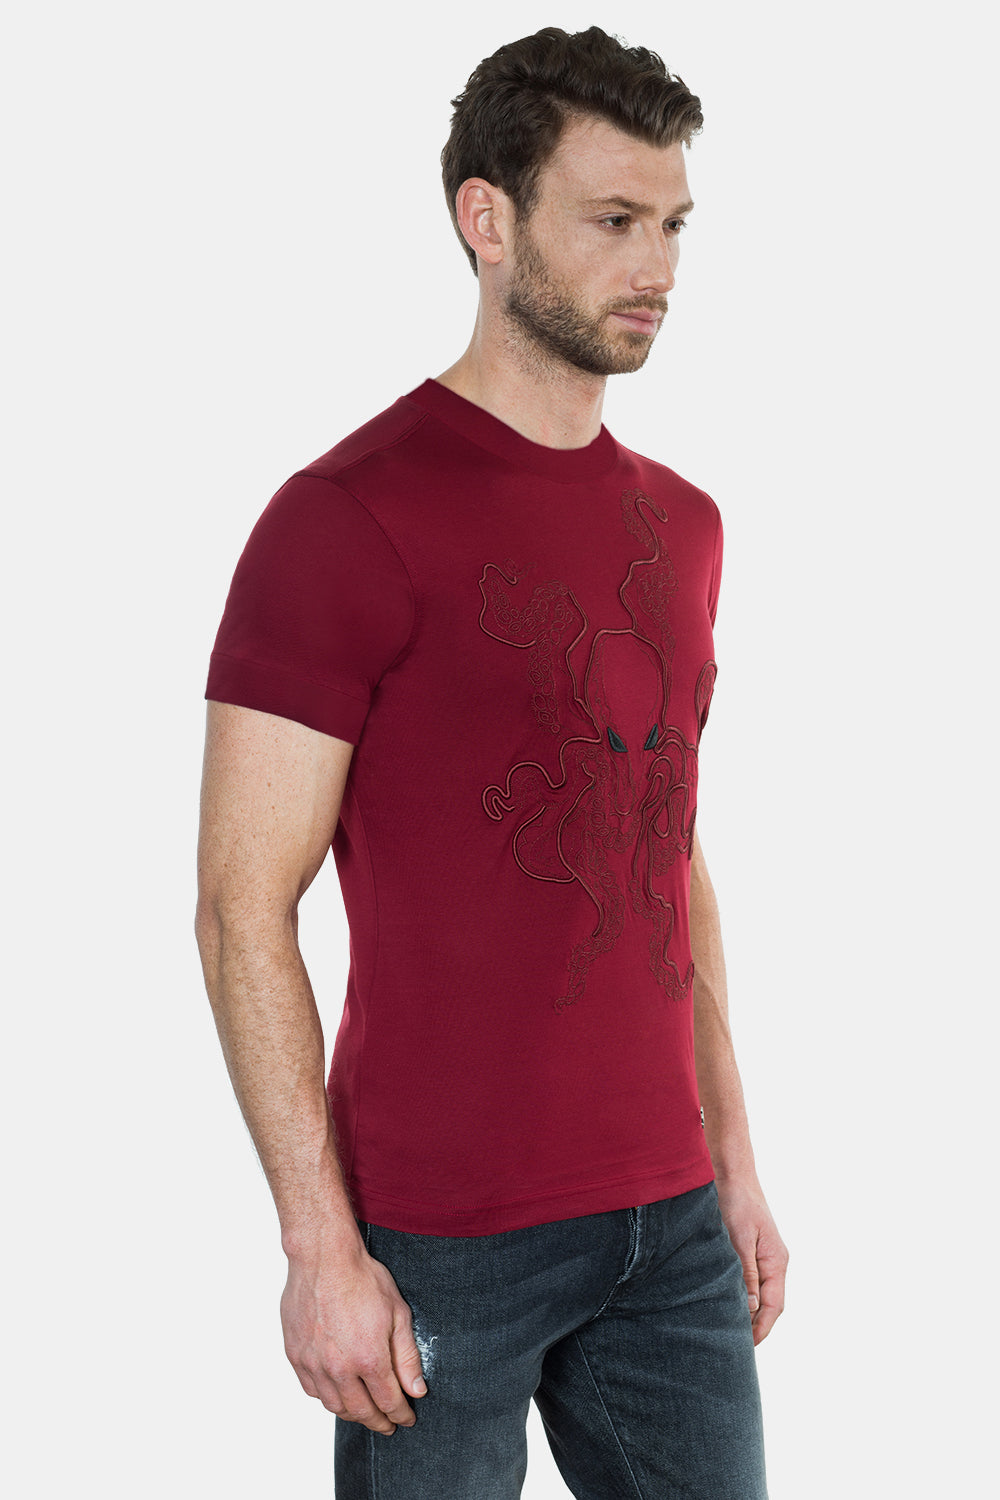 OCTOPUS EMBROIDERY T-SHIRT - DIMORAL OFFICIAL